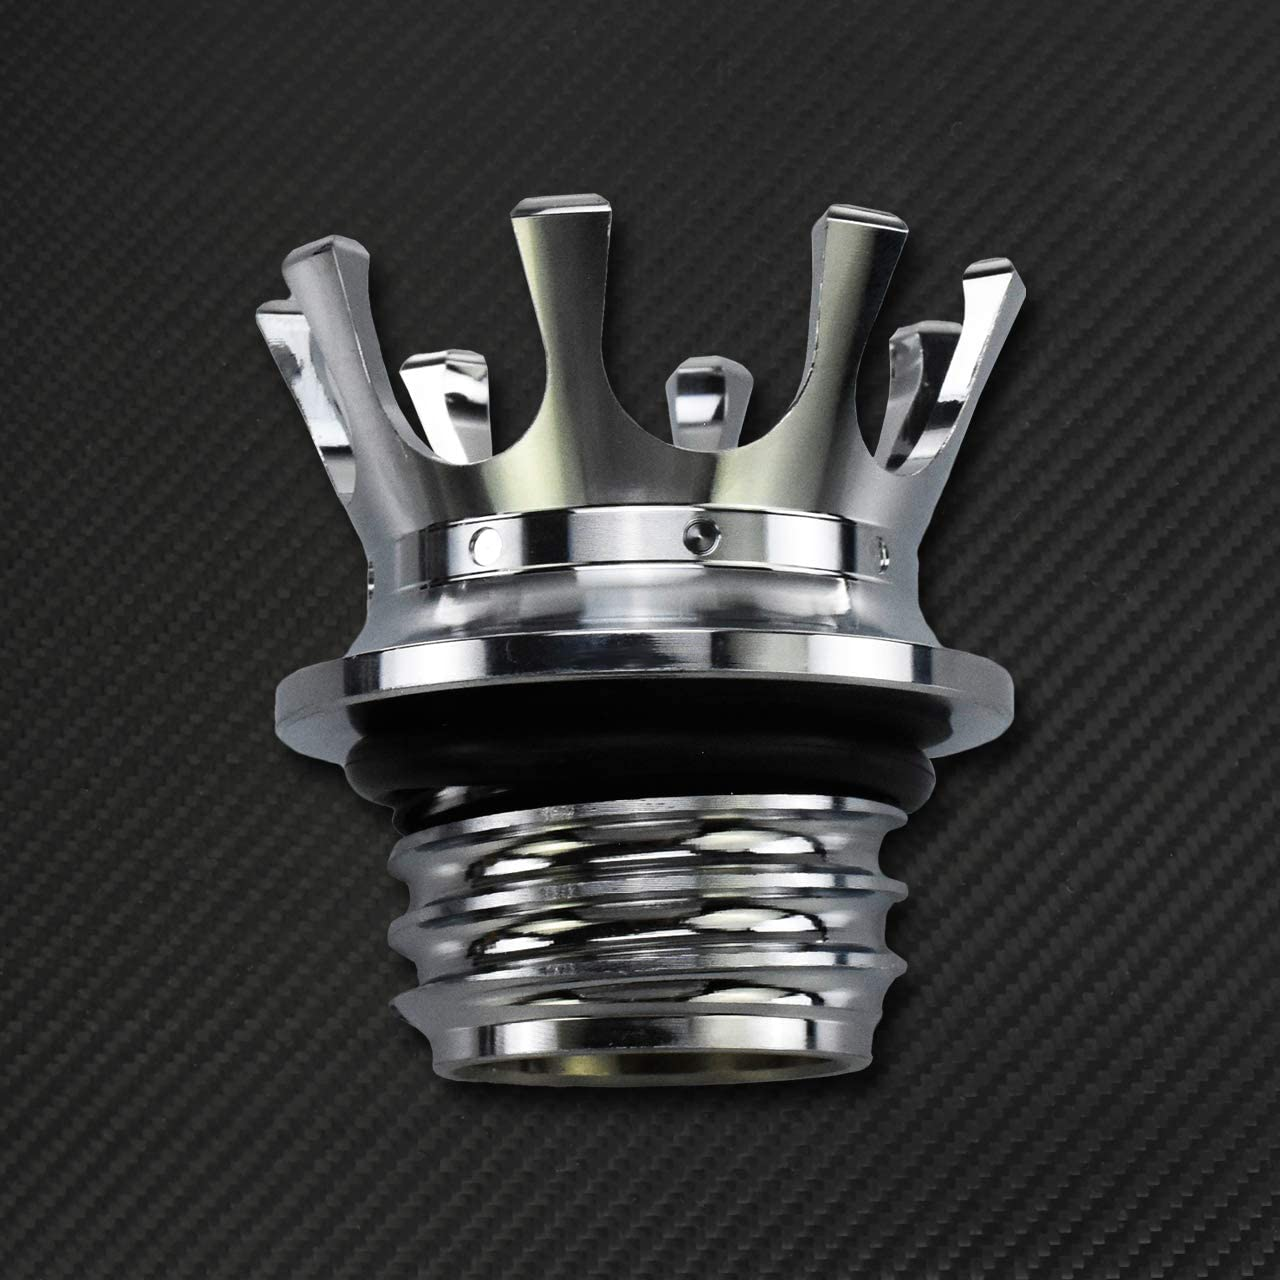 YHMTIVTU Motorcycle Fuel Tank Cap Aluminum King Crown Gas Cap Right-hand Thread Fit For for Harley Sportster XL 883 1200 48 Dyna Road King Softail Chrome